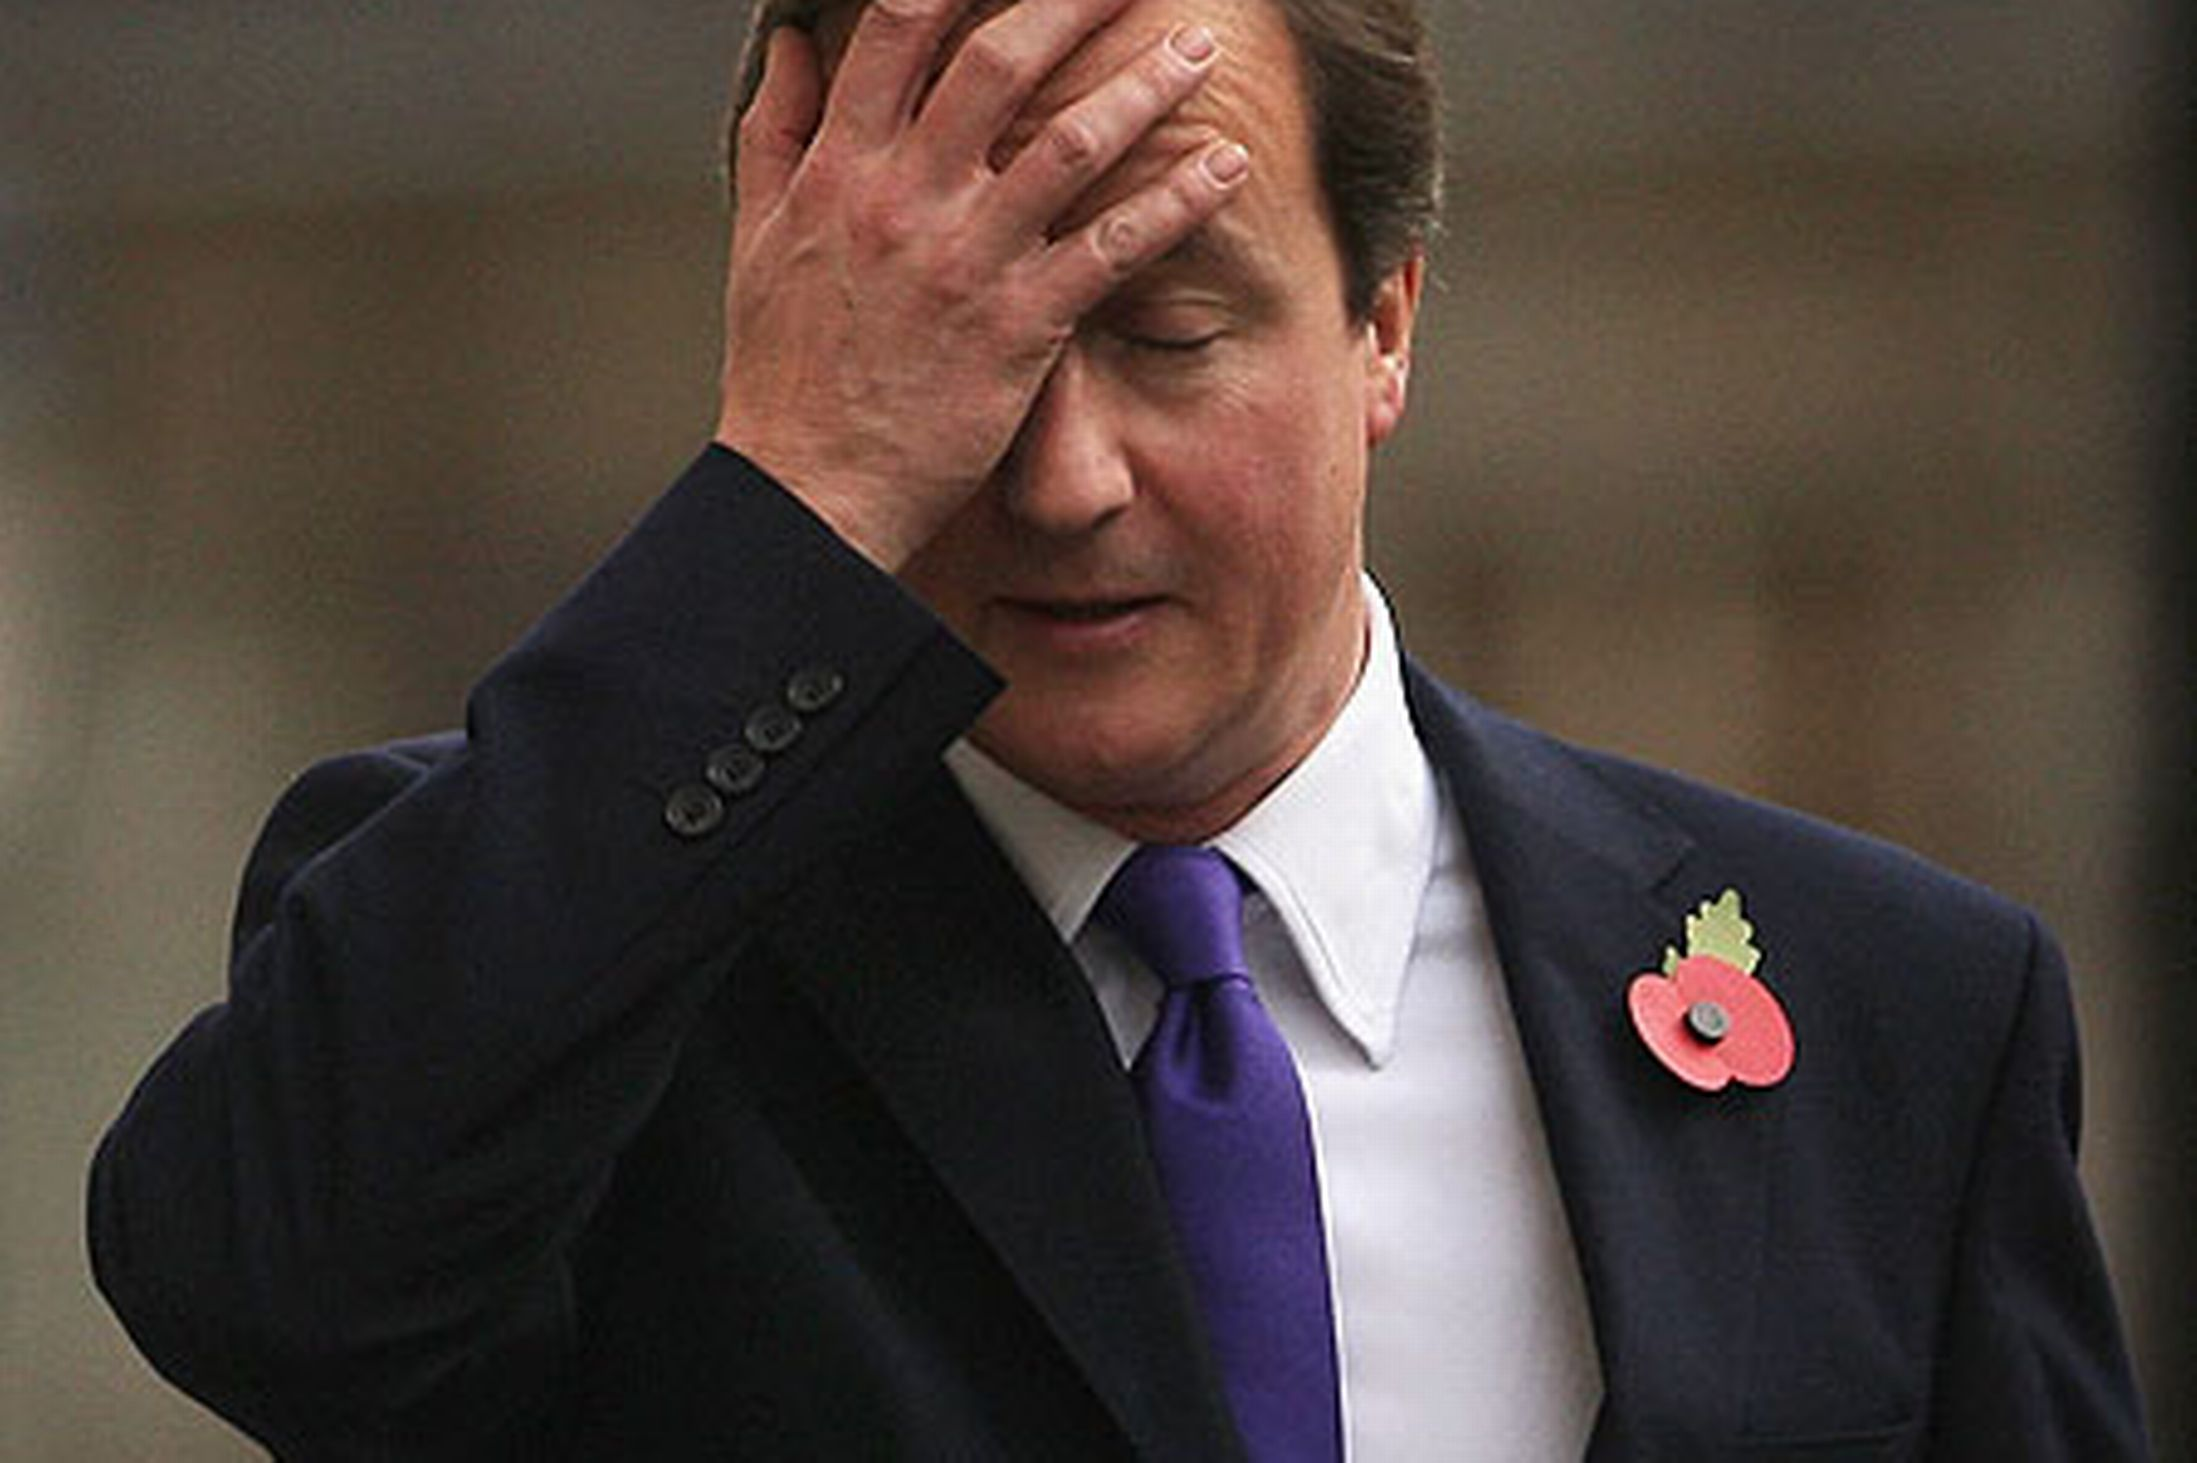 David Cameron Faces Calls to Resign After Finally Admitting He Had Shares in Offshore Fund David-cameron